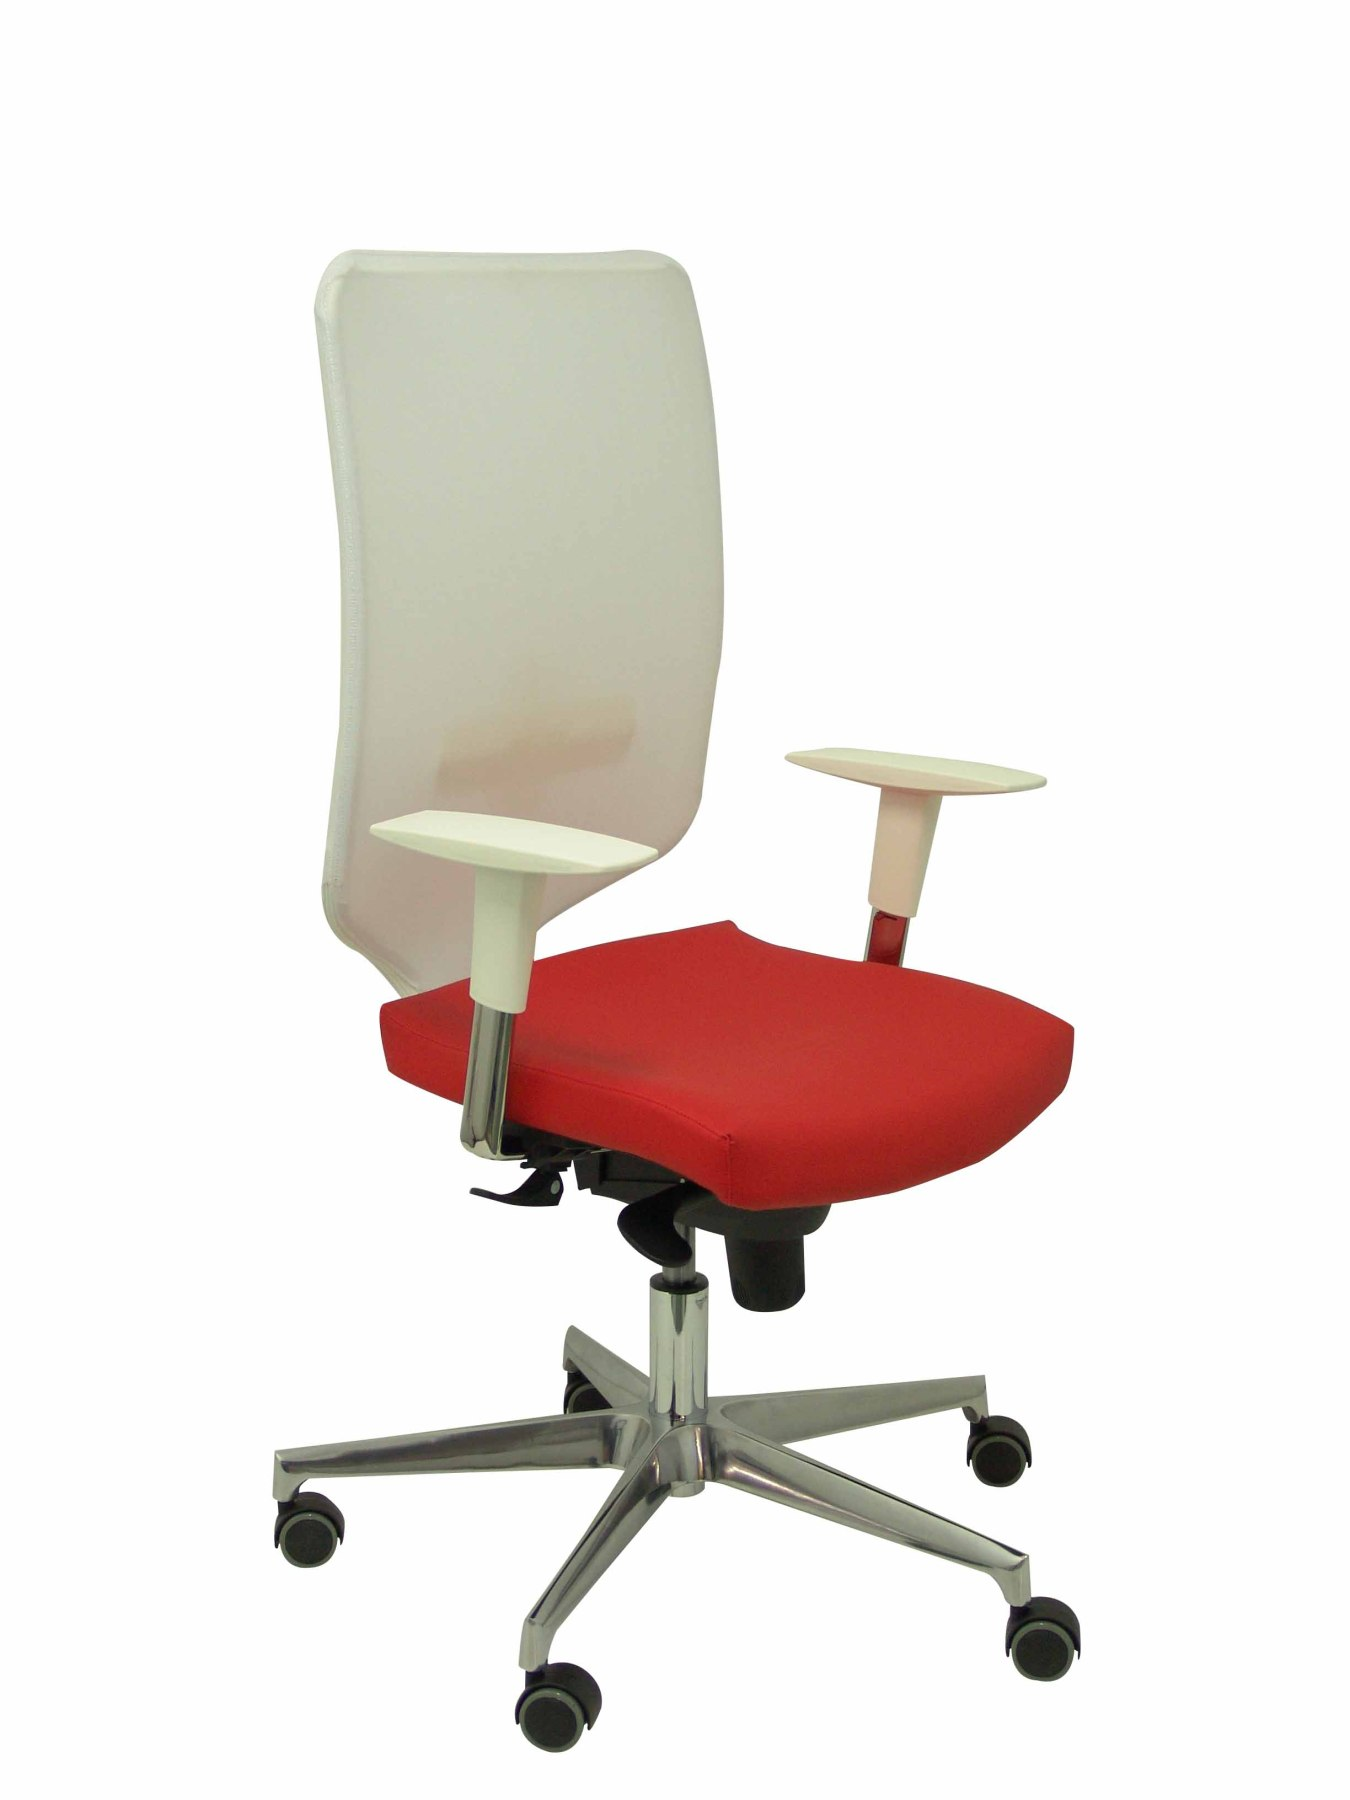 Ergonomic Office Chair With Mechanism Synchro And Height Adjustable Mesh Back And White Color Seat Tap